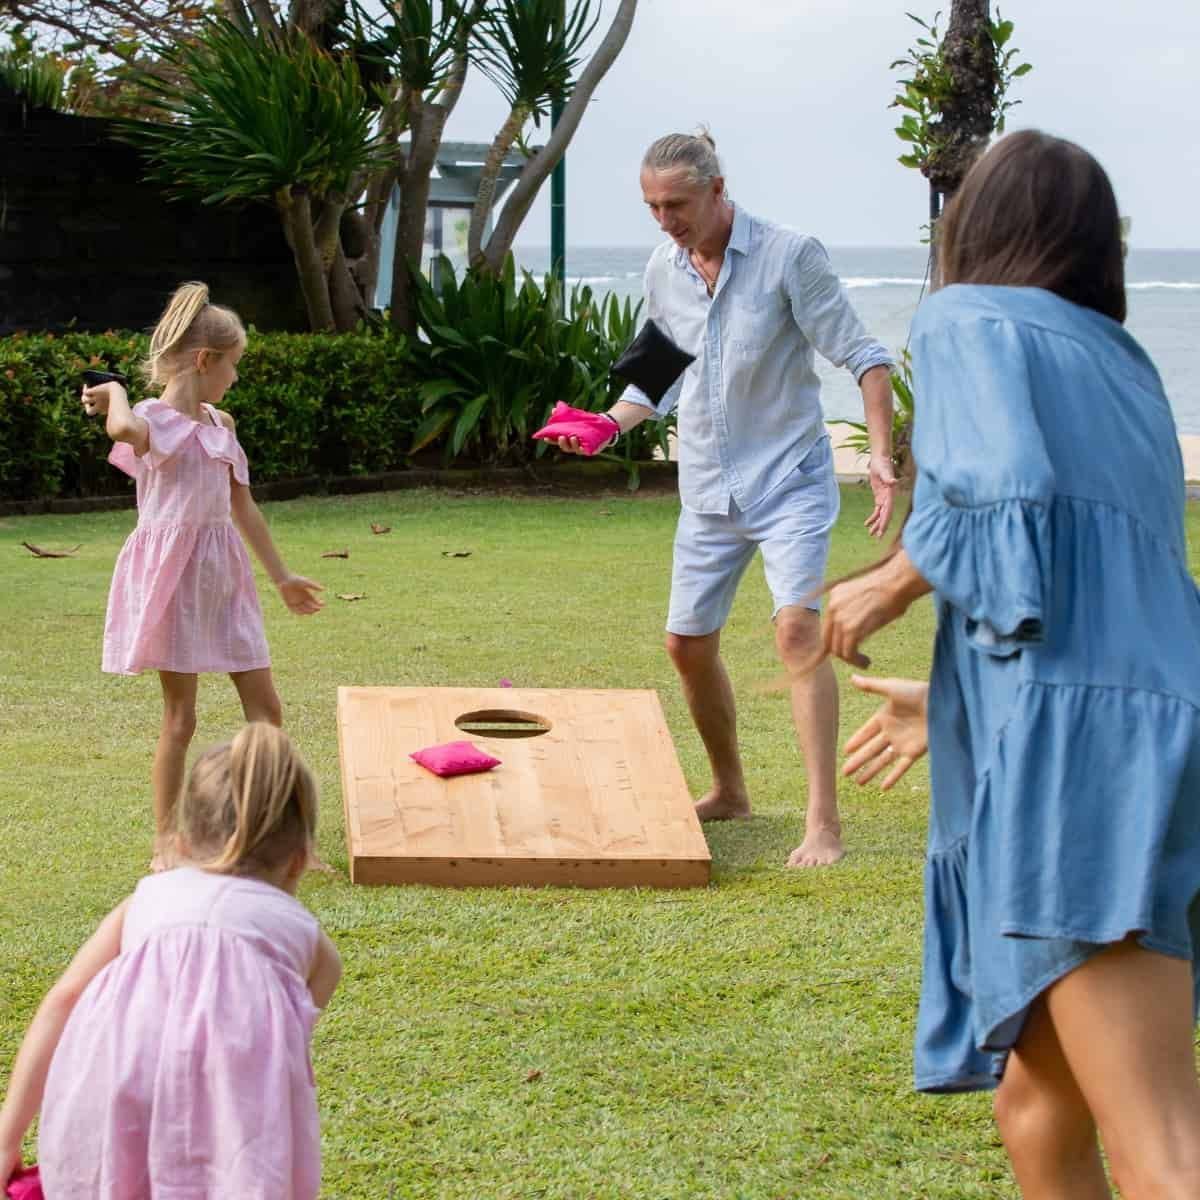 family playing cornhole at the beach